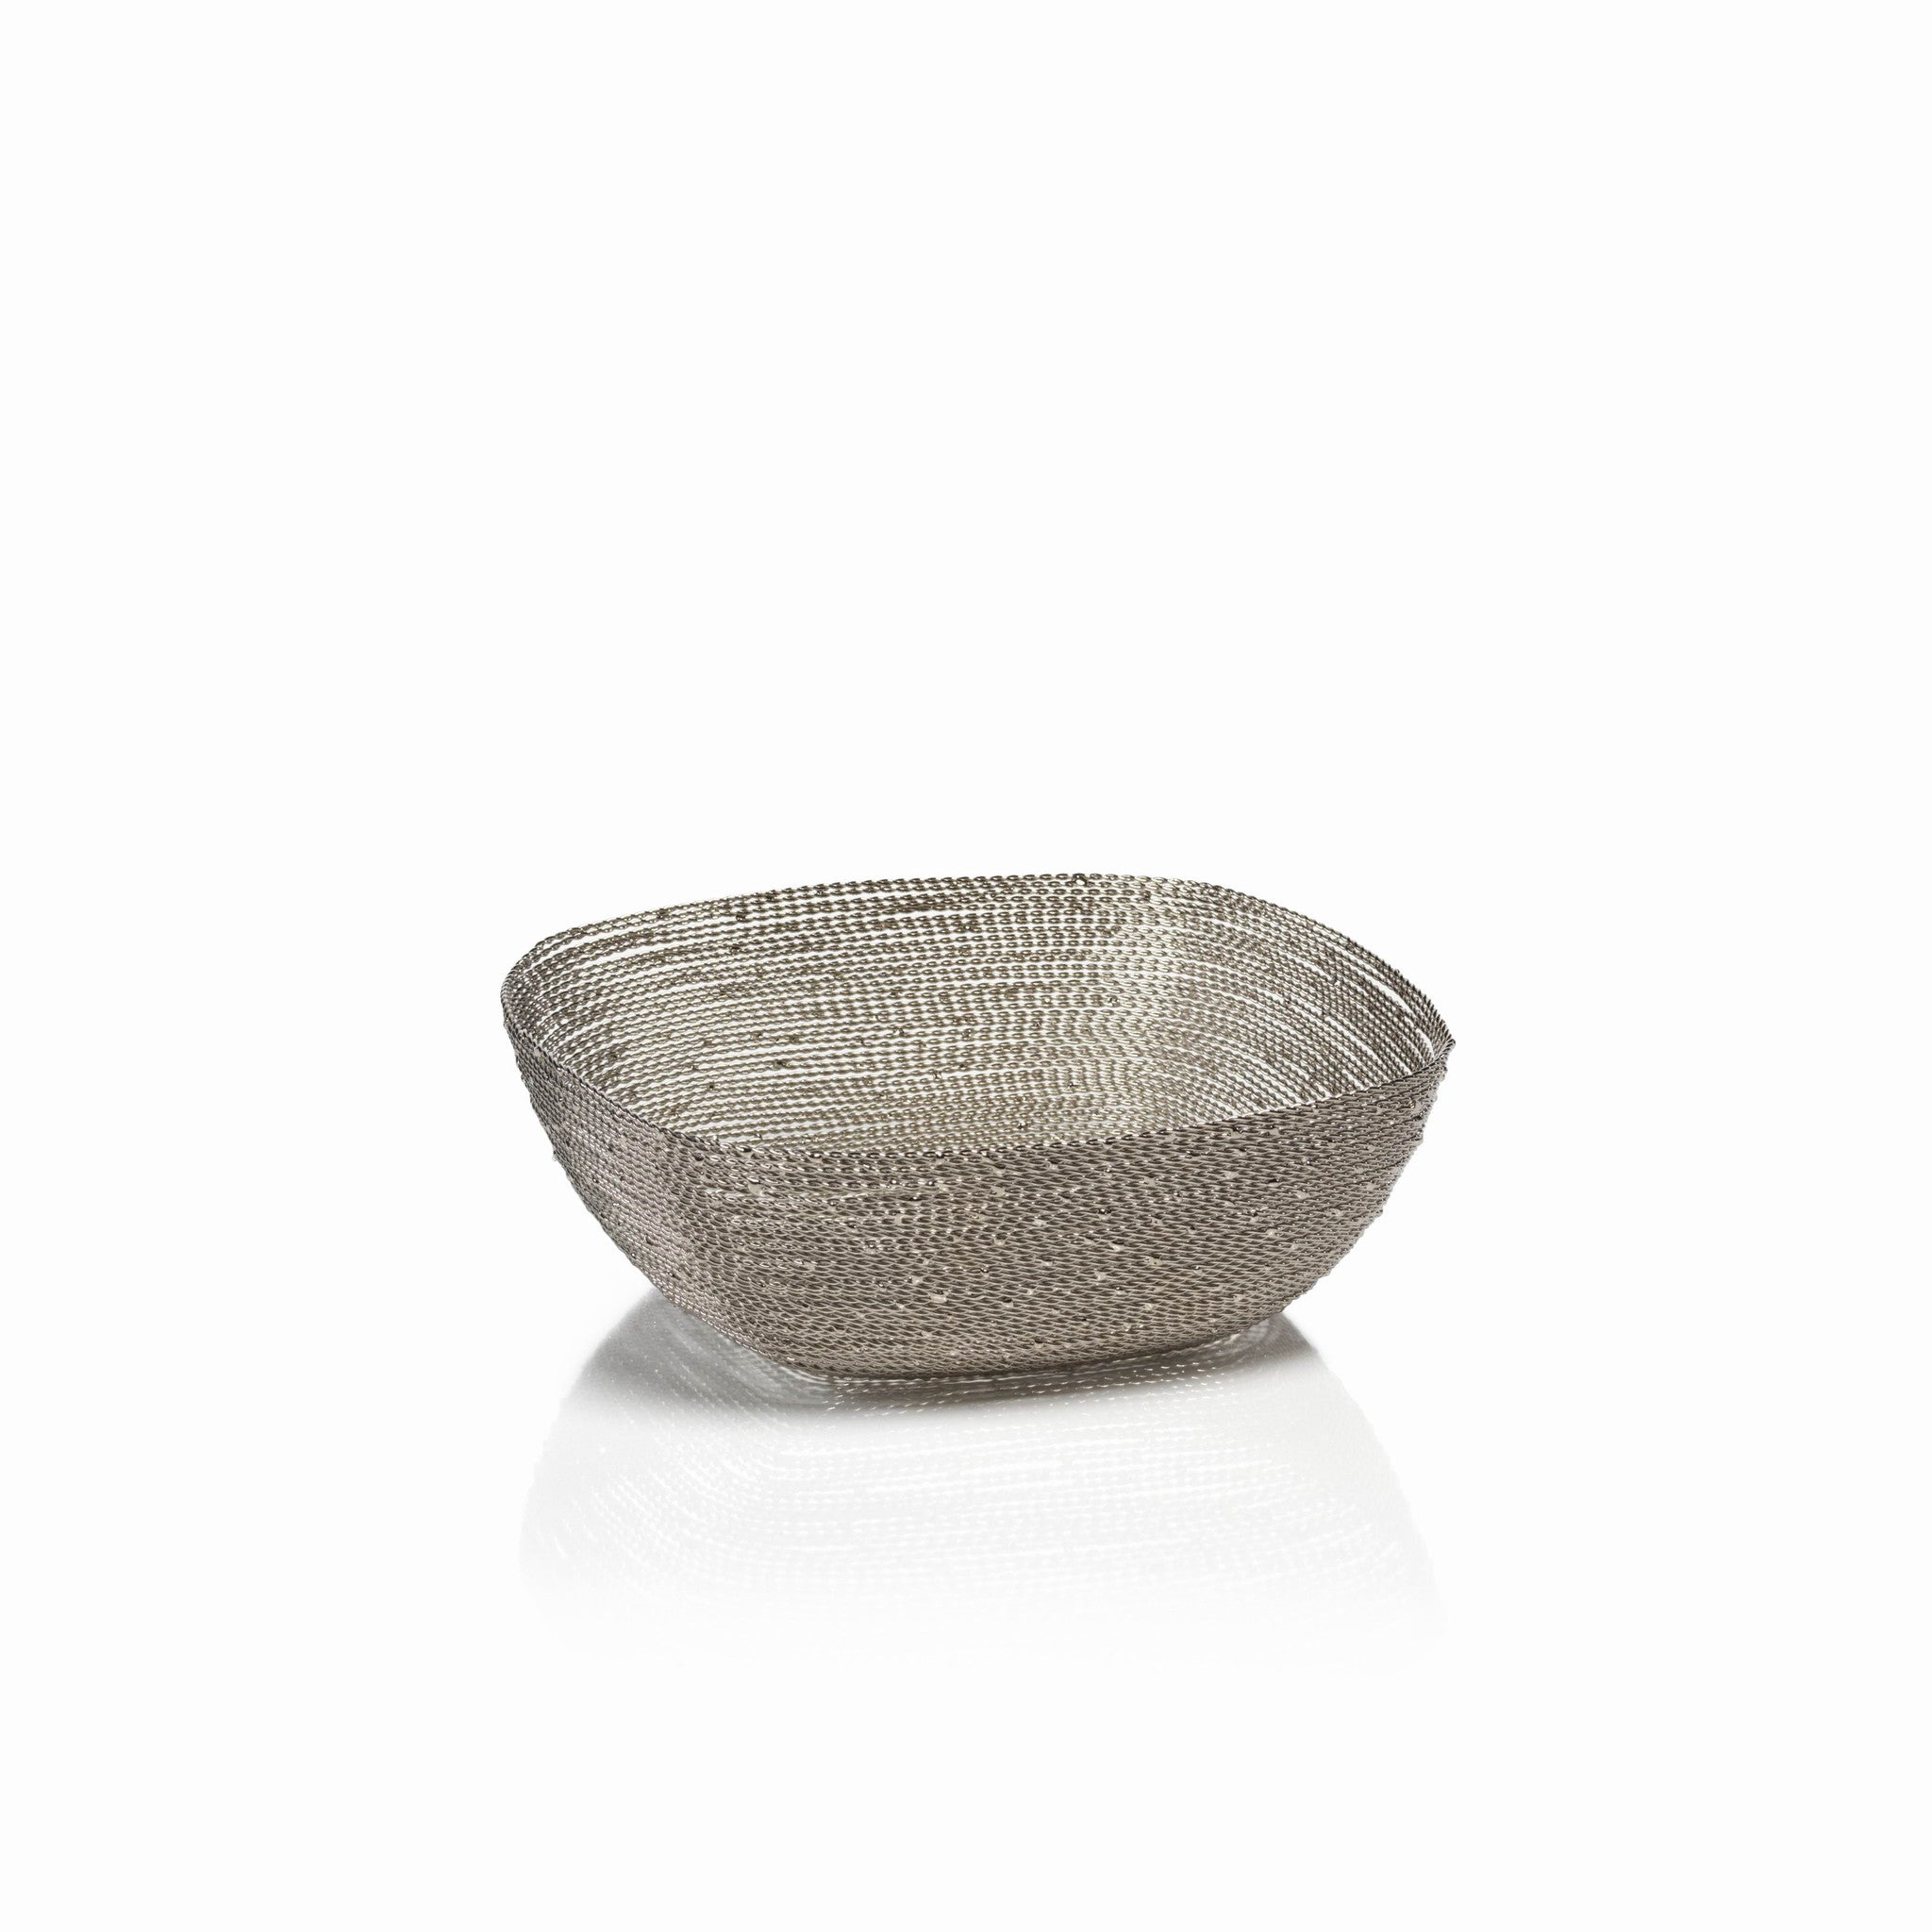 Zulu Woven Wire Basket - Square / Small - CARLYLE AVENUE - 4